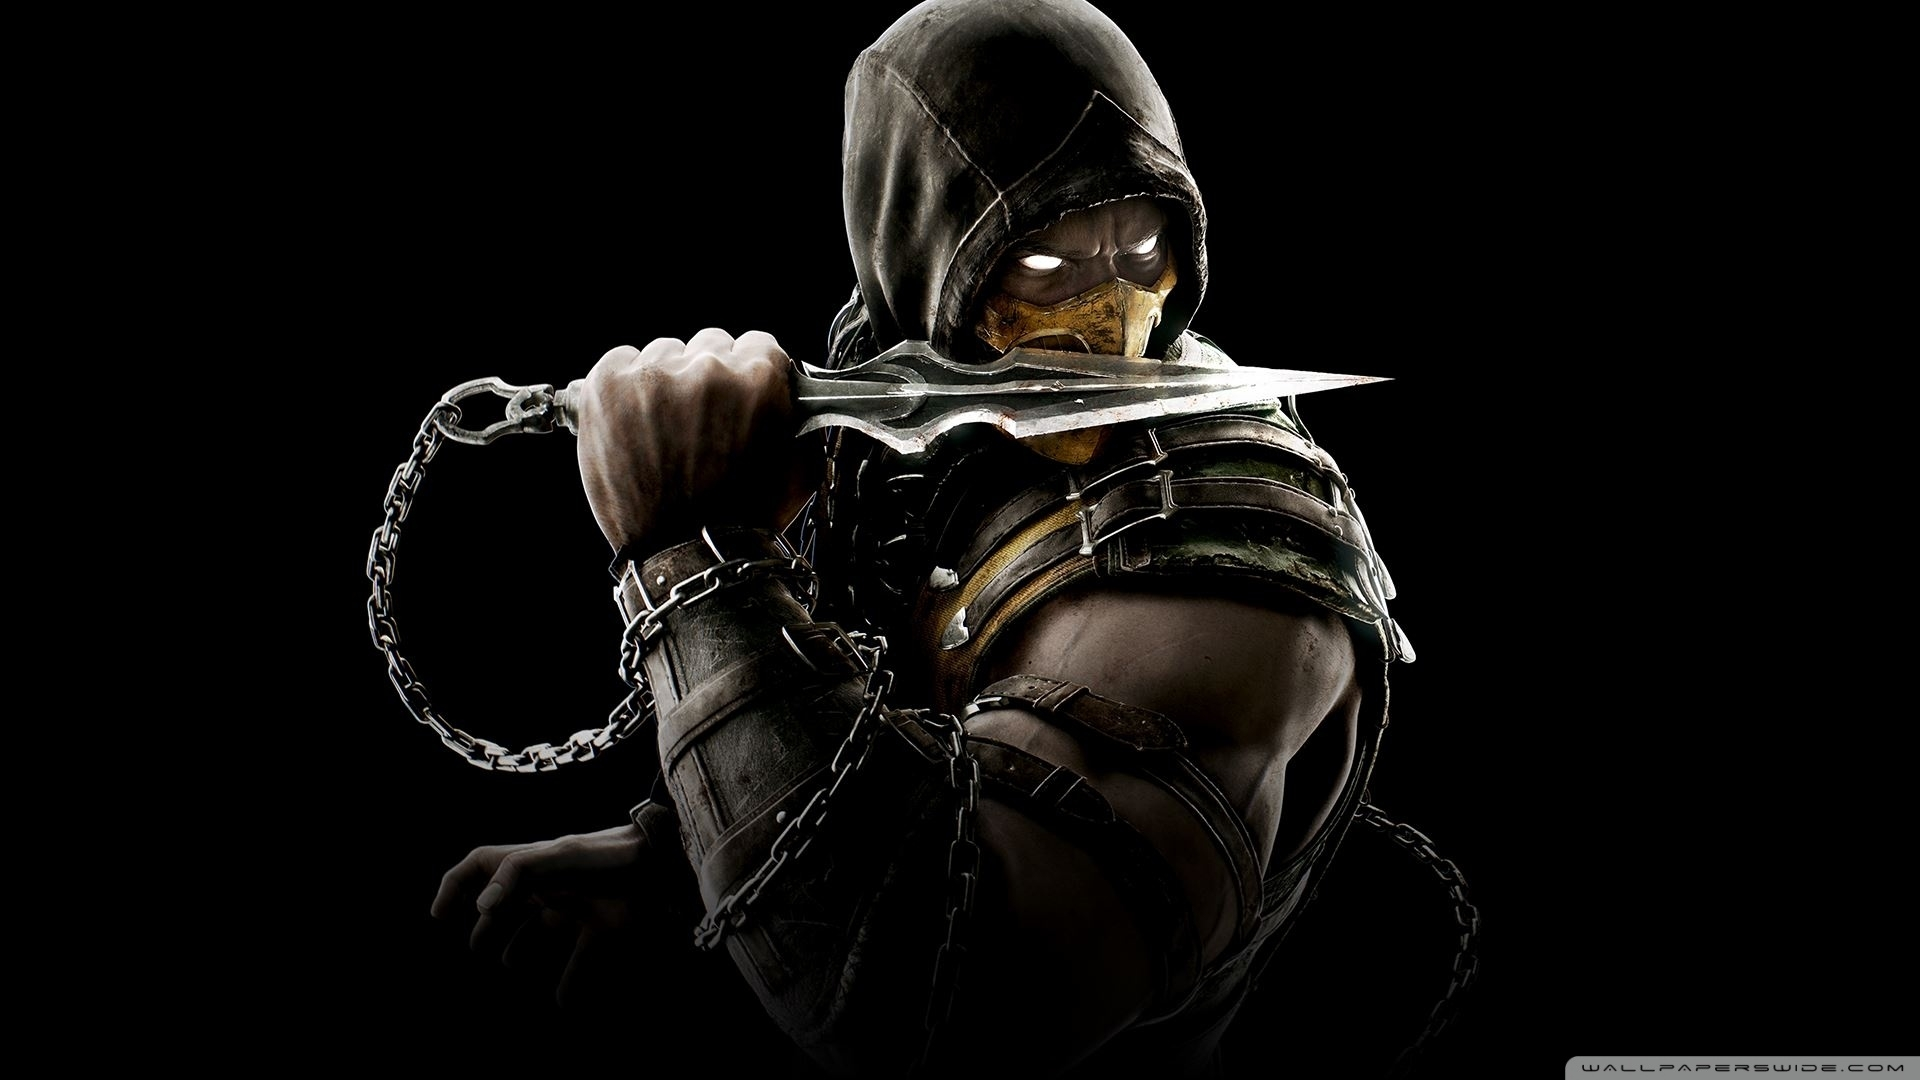 10 Latest Scorpion Mortal Kombat Wallpapers FULL HD 1920×1080 For PC Desktop